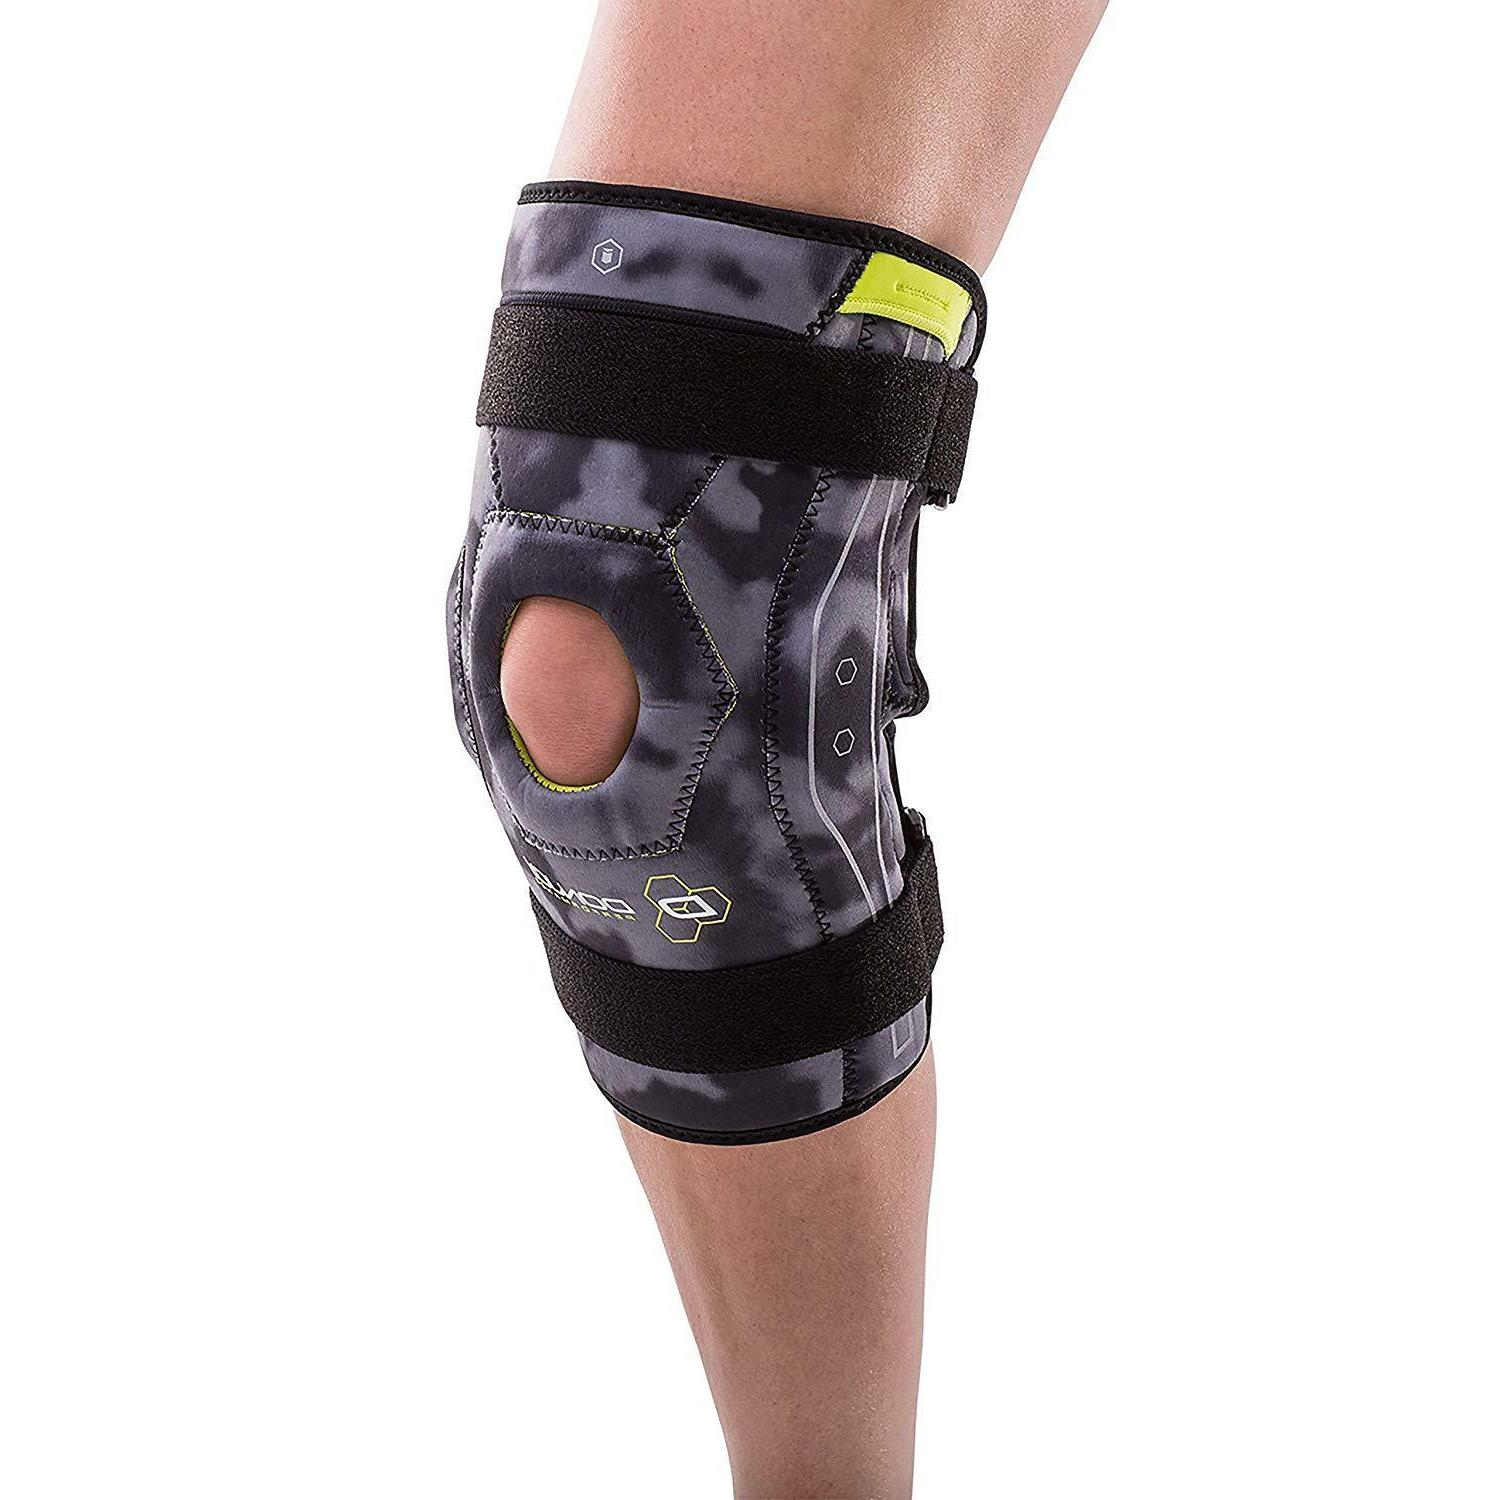 bionic knee support brace camo small